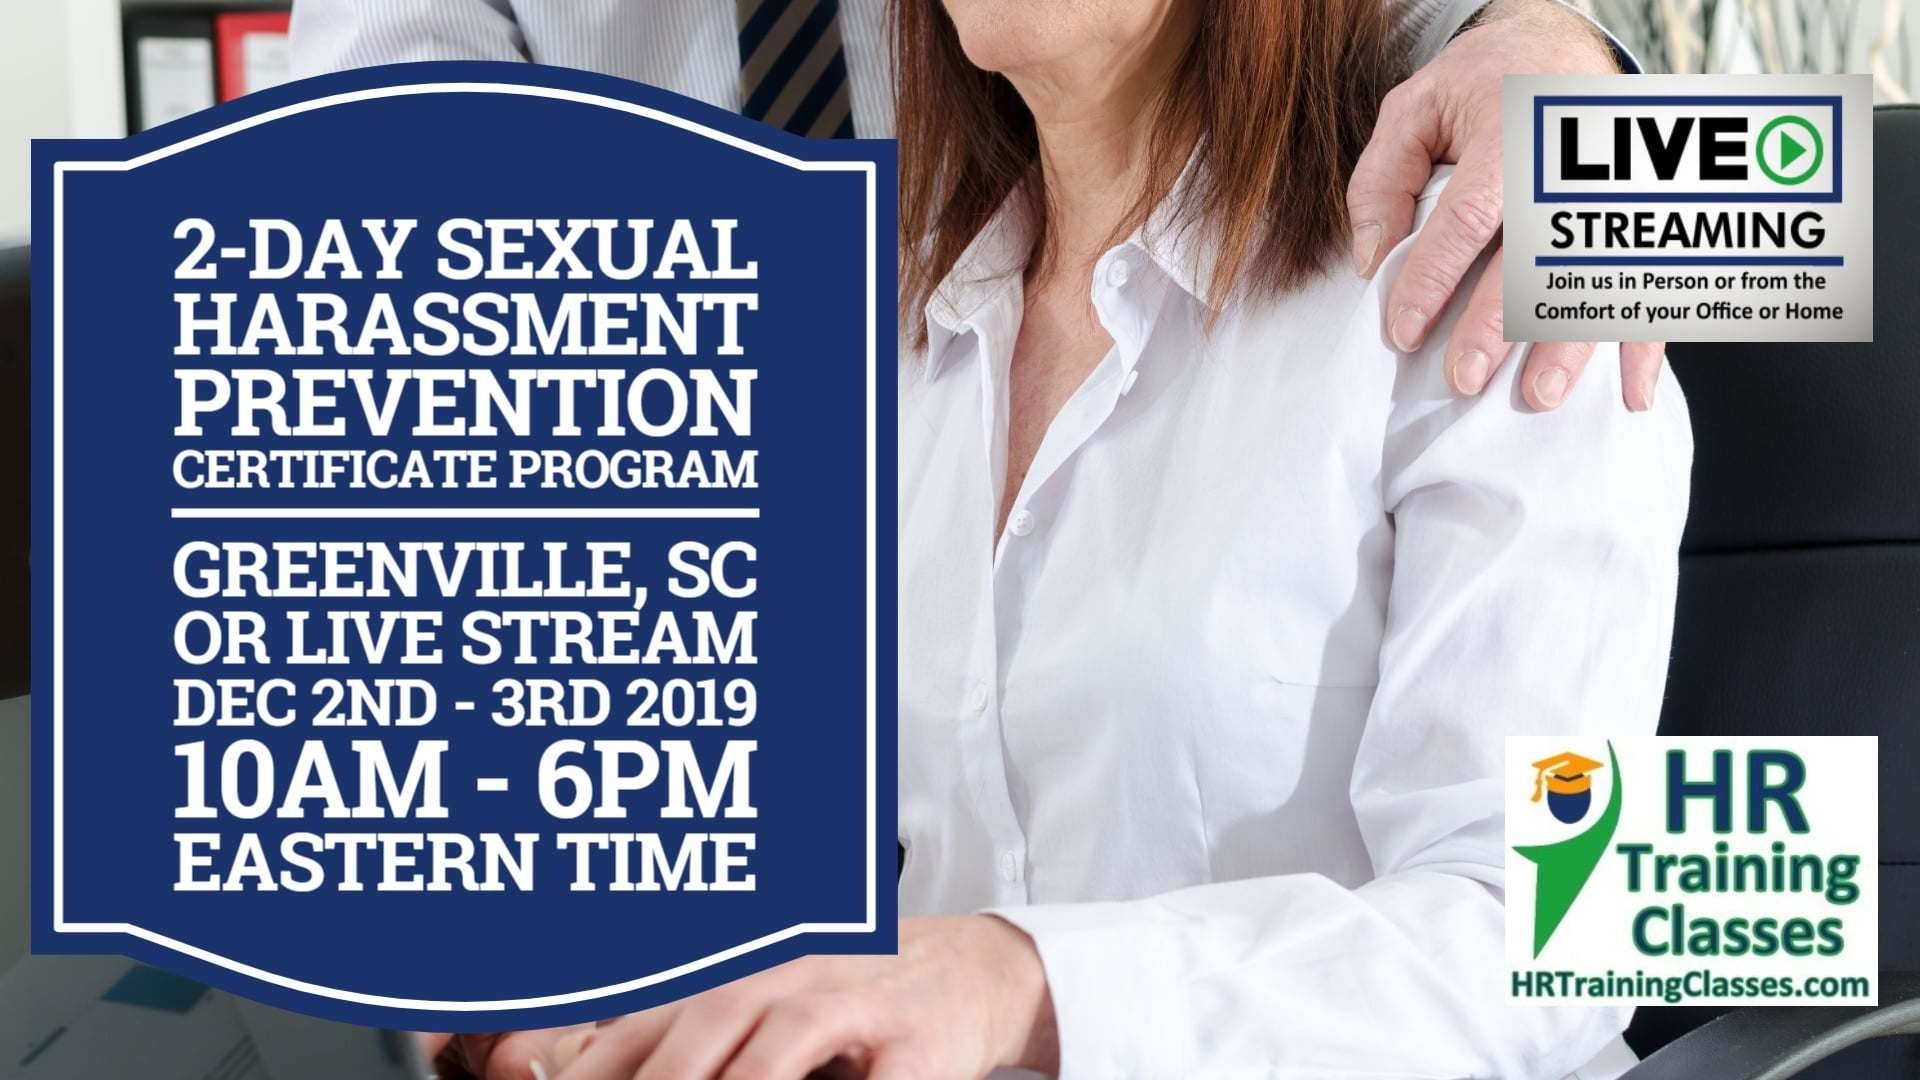 2-Day Sexual Harassment Prevention Certificate Program for HR Professionals (Starts 12/2/19)